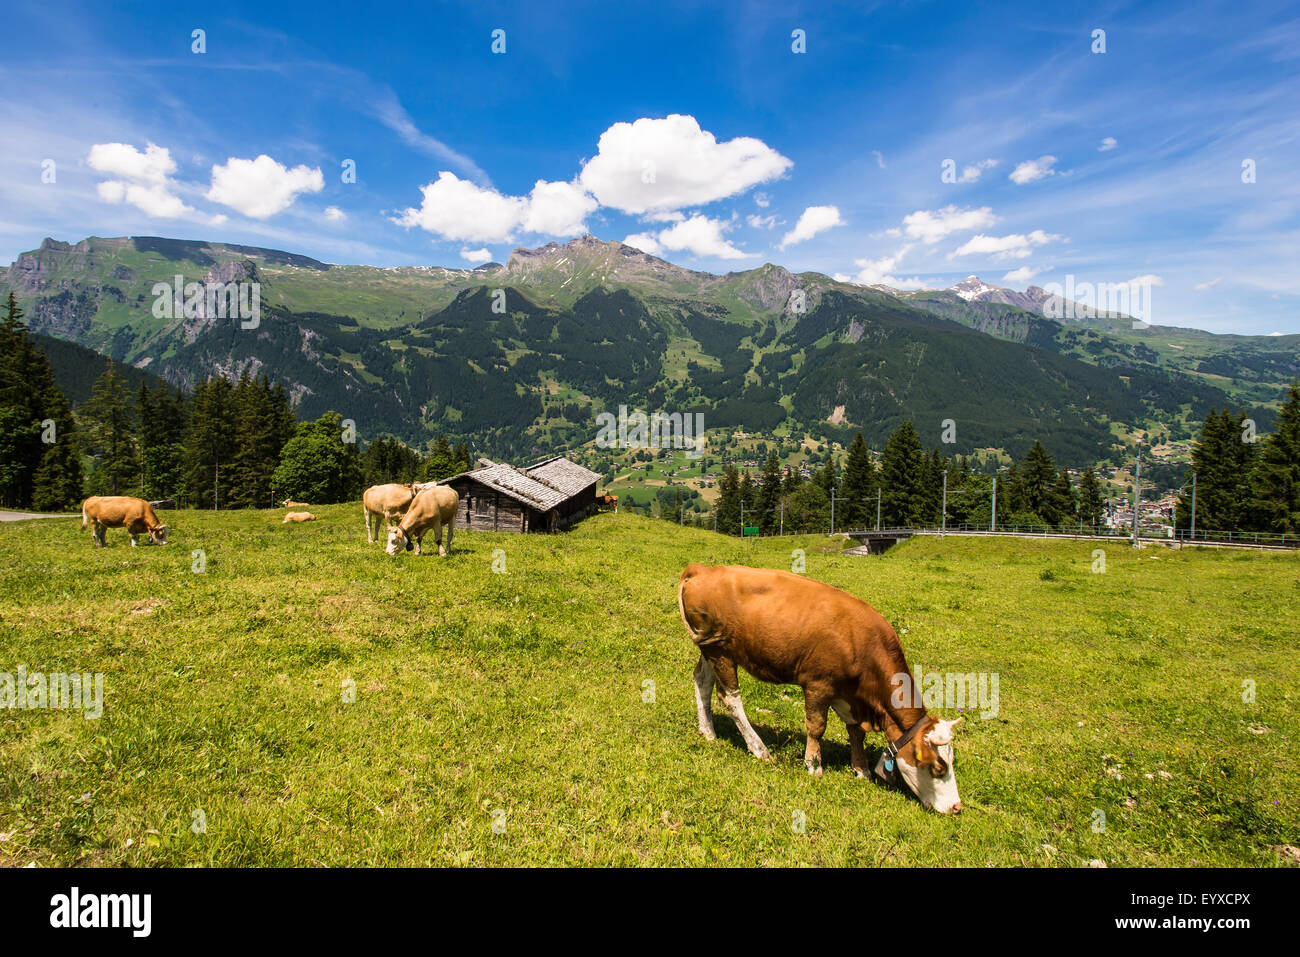 Swiss cows up in the alps - Stock Image